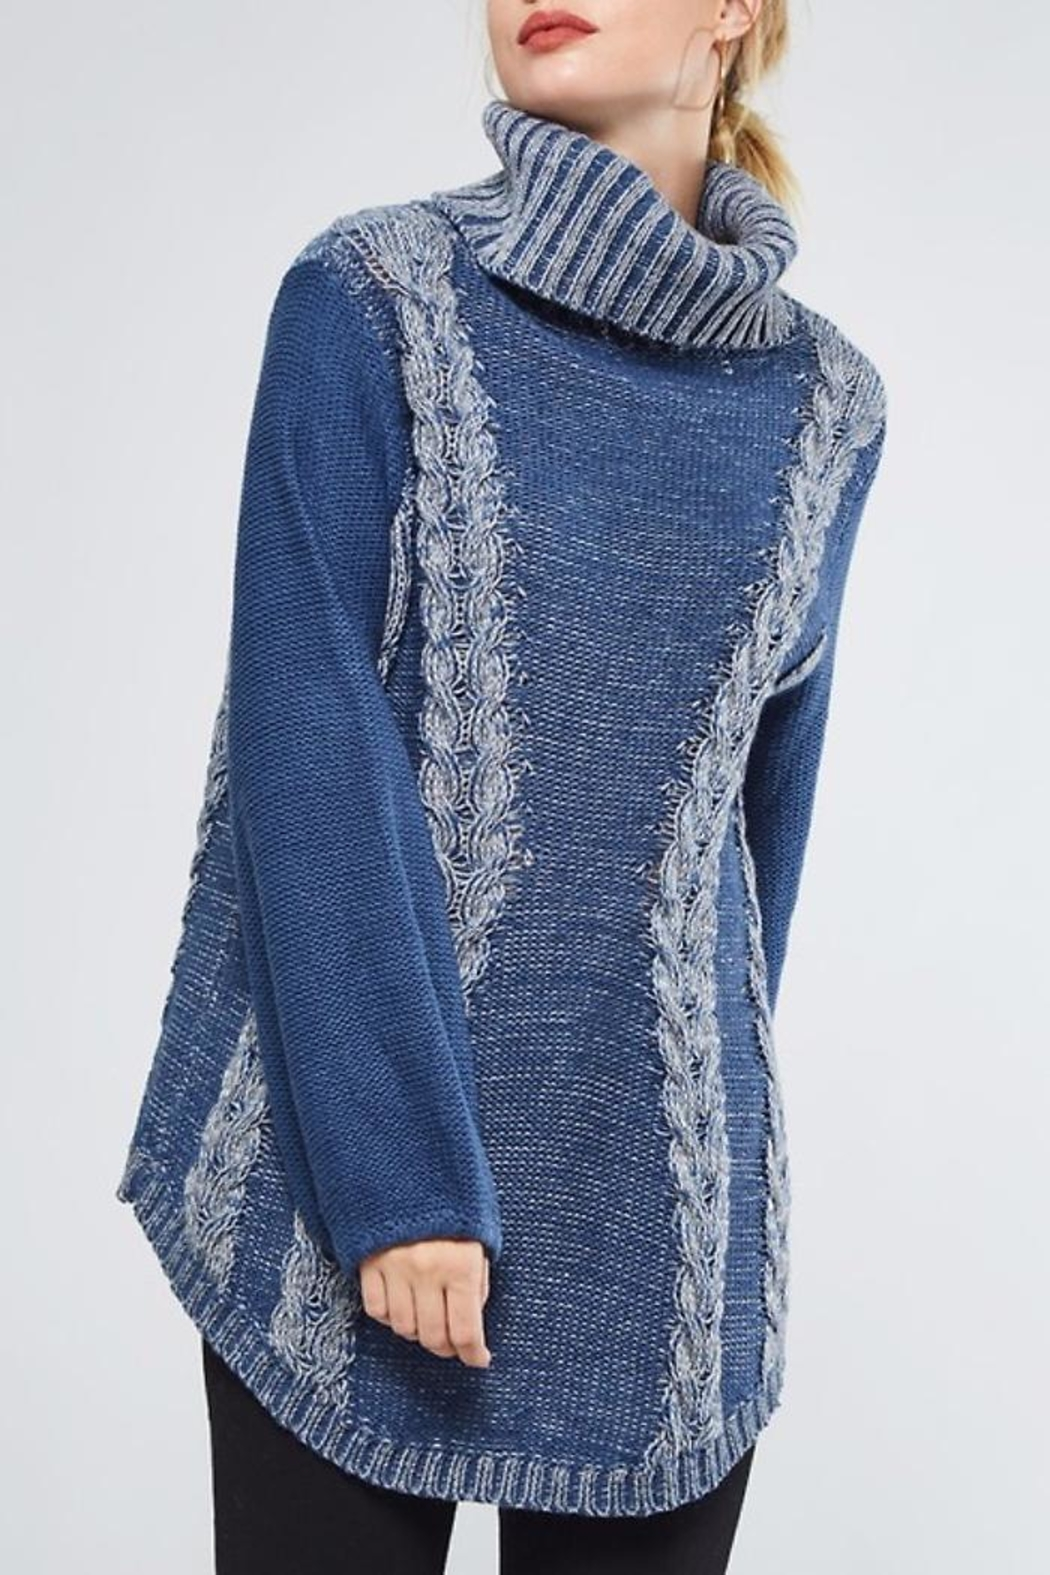 People Outfitter Heartened Blue Sweater - Main Image